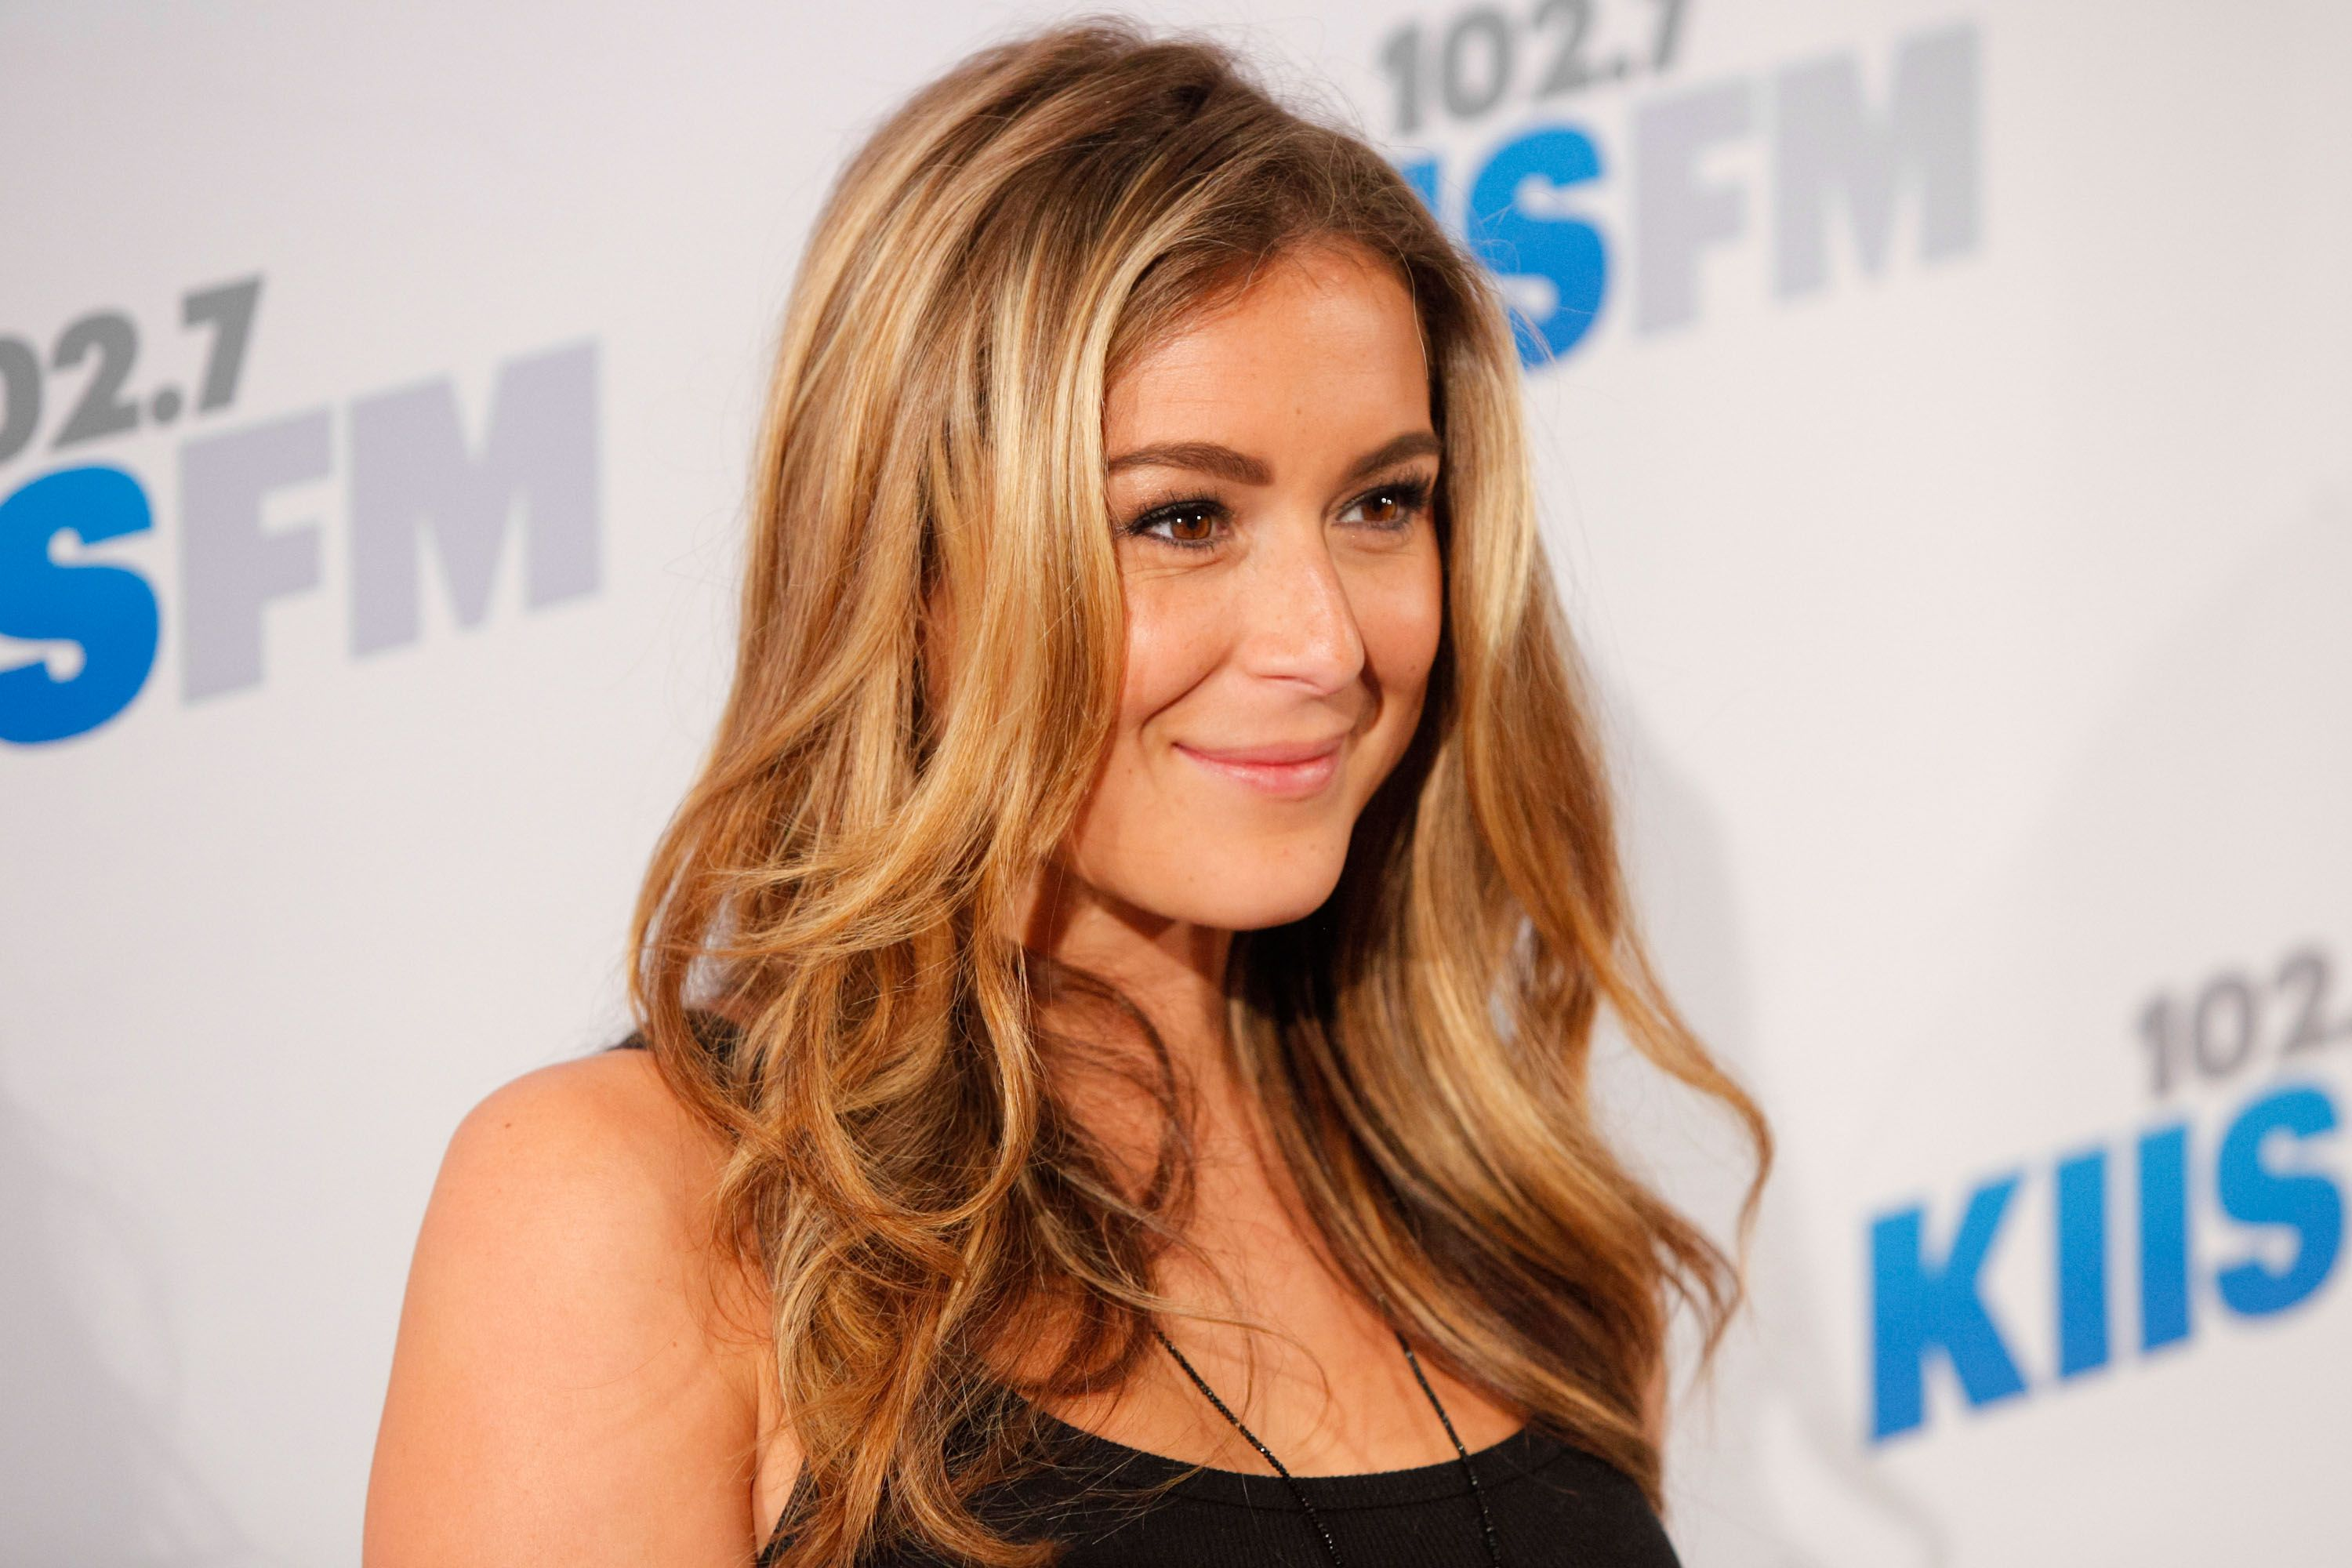 Alexa Vega Wallpapers Images Photos Pictures Backgrounds